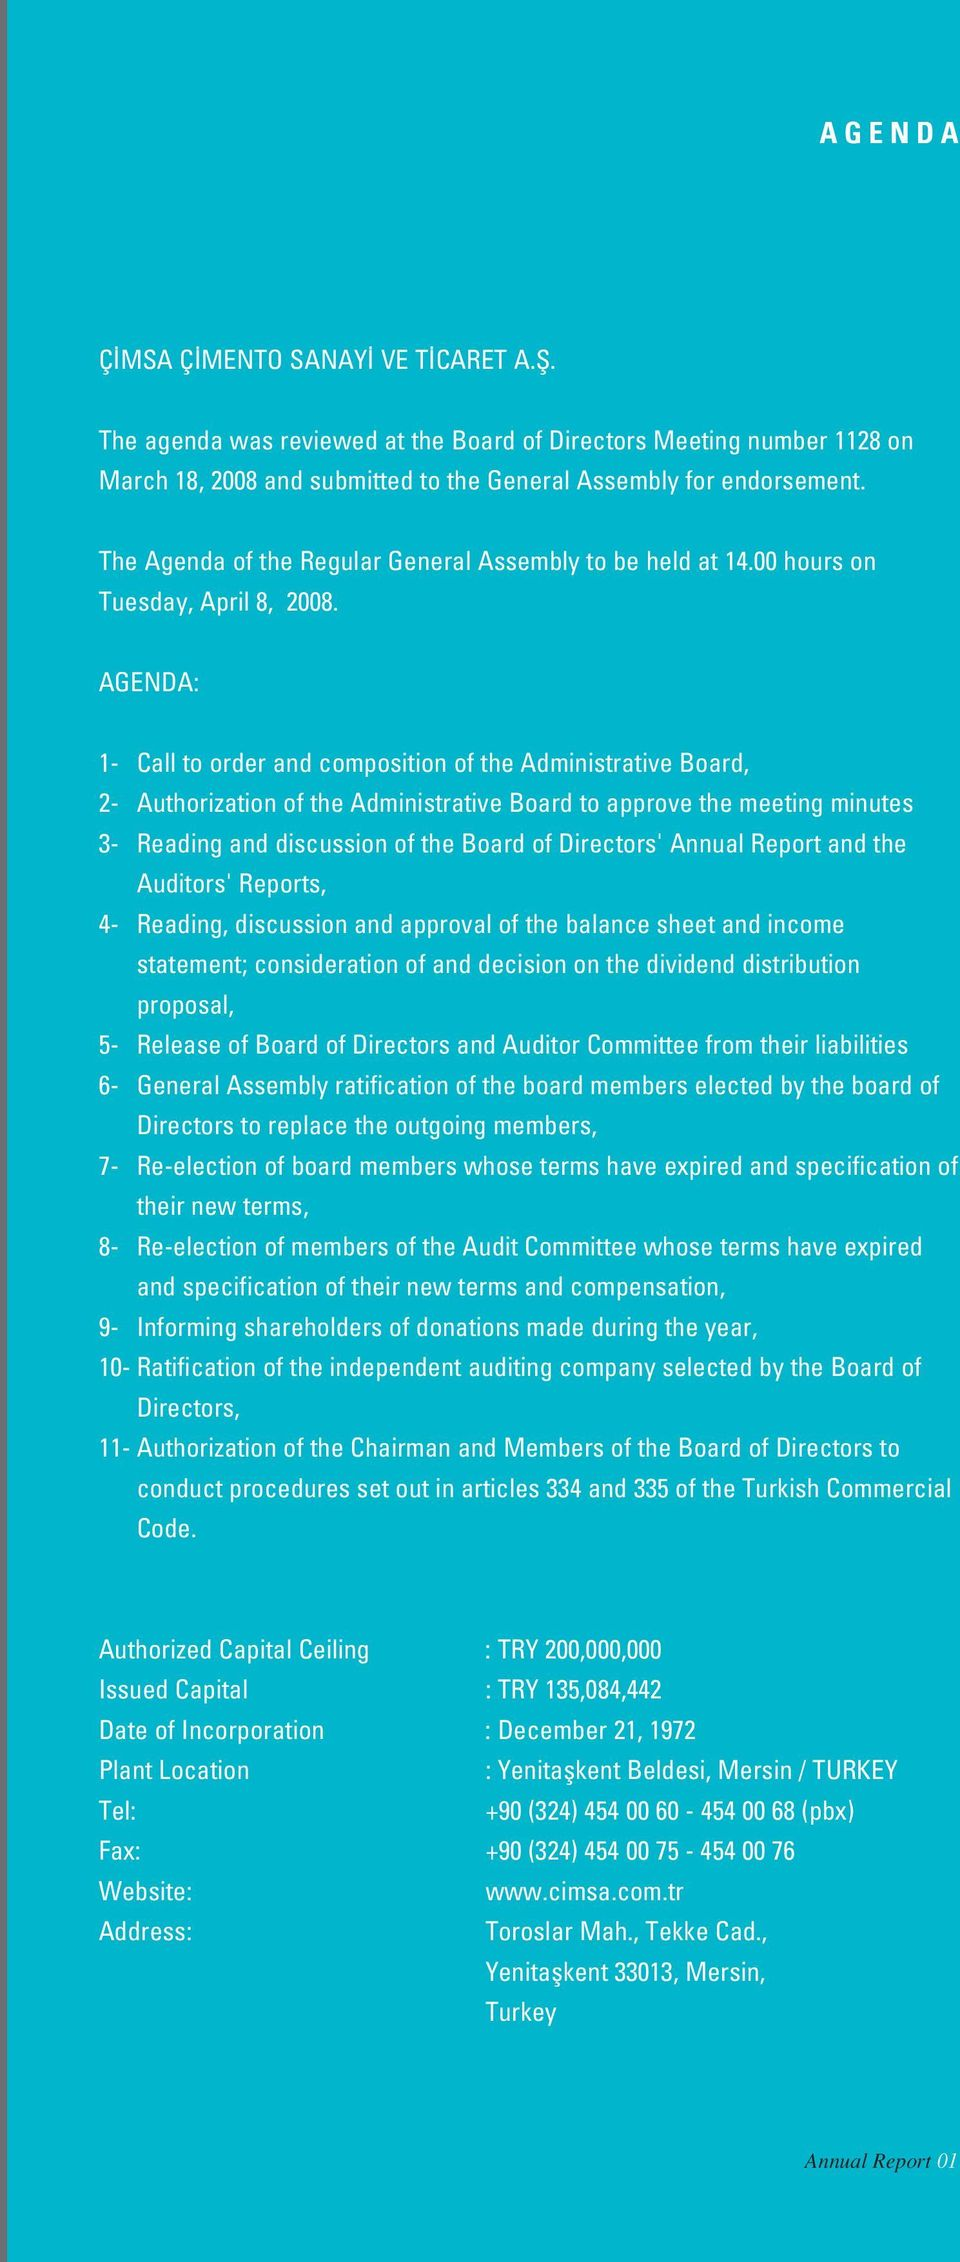 AGENDA: 1- Call to order and composition of the Administrative Board, 2- Authorization of the Administrative Board to approve the meeting minutes 3- Reading and discussion of the Board of Directors'